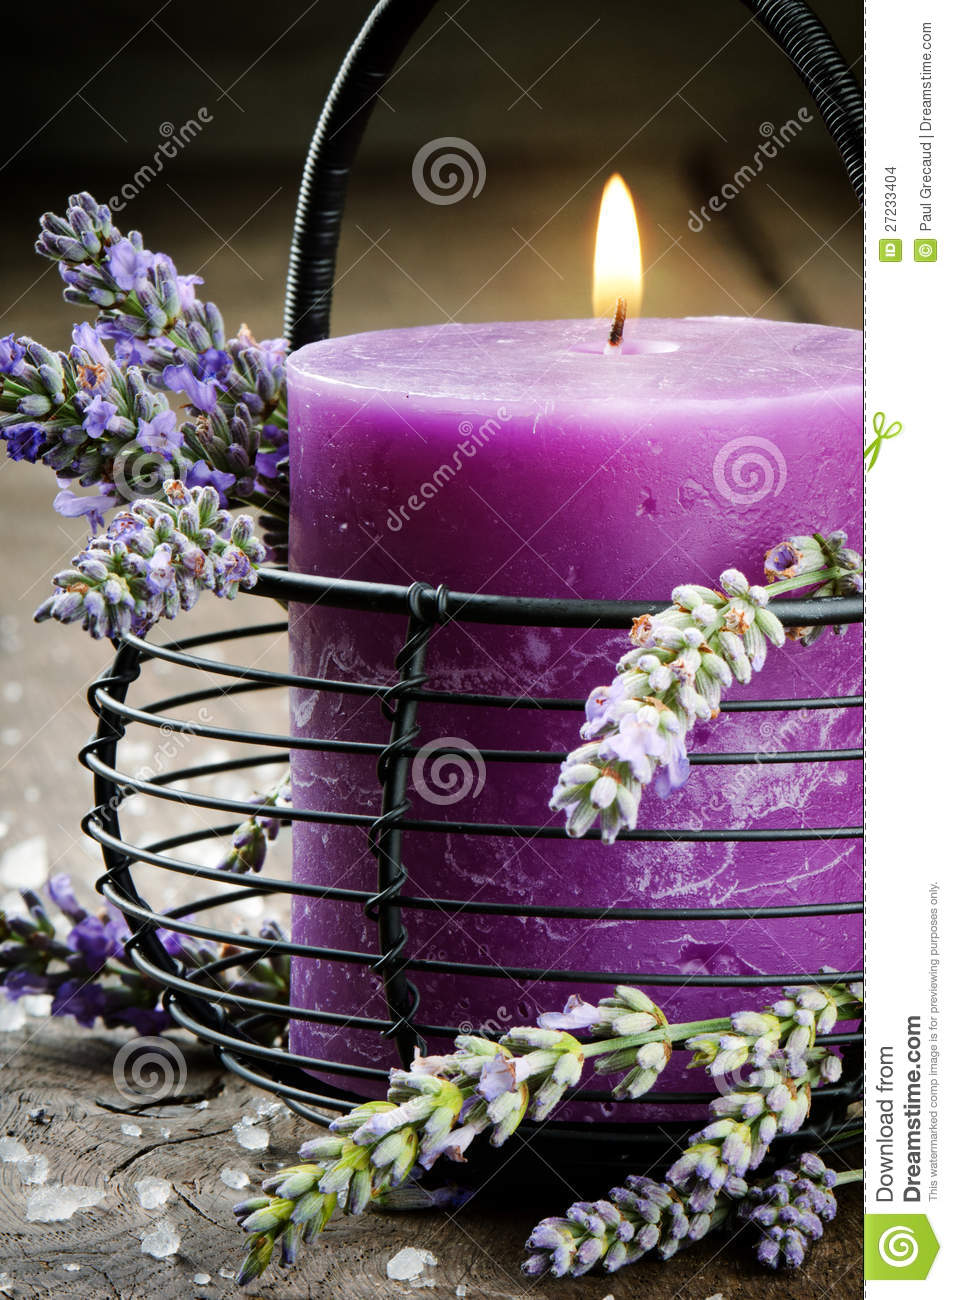 Candle With Lavender Flowers Stock Images - Image: 27233404